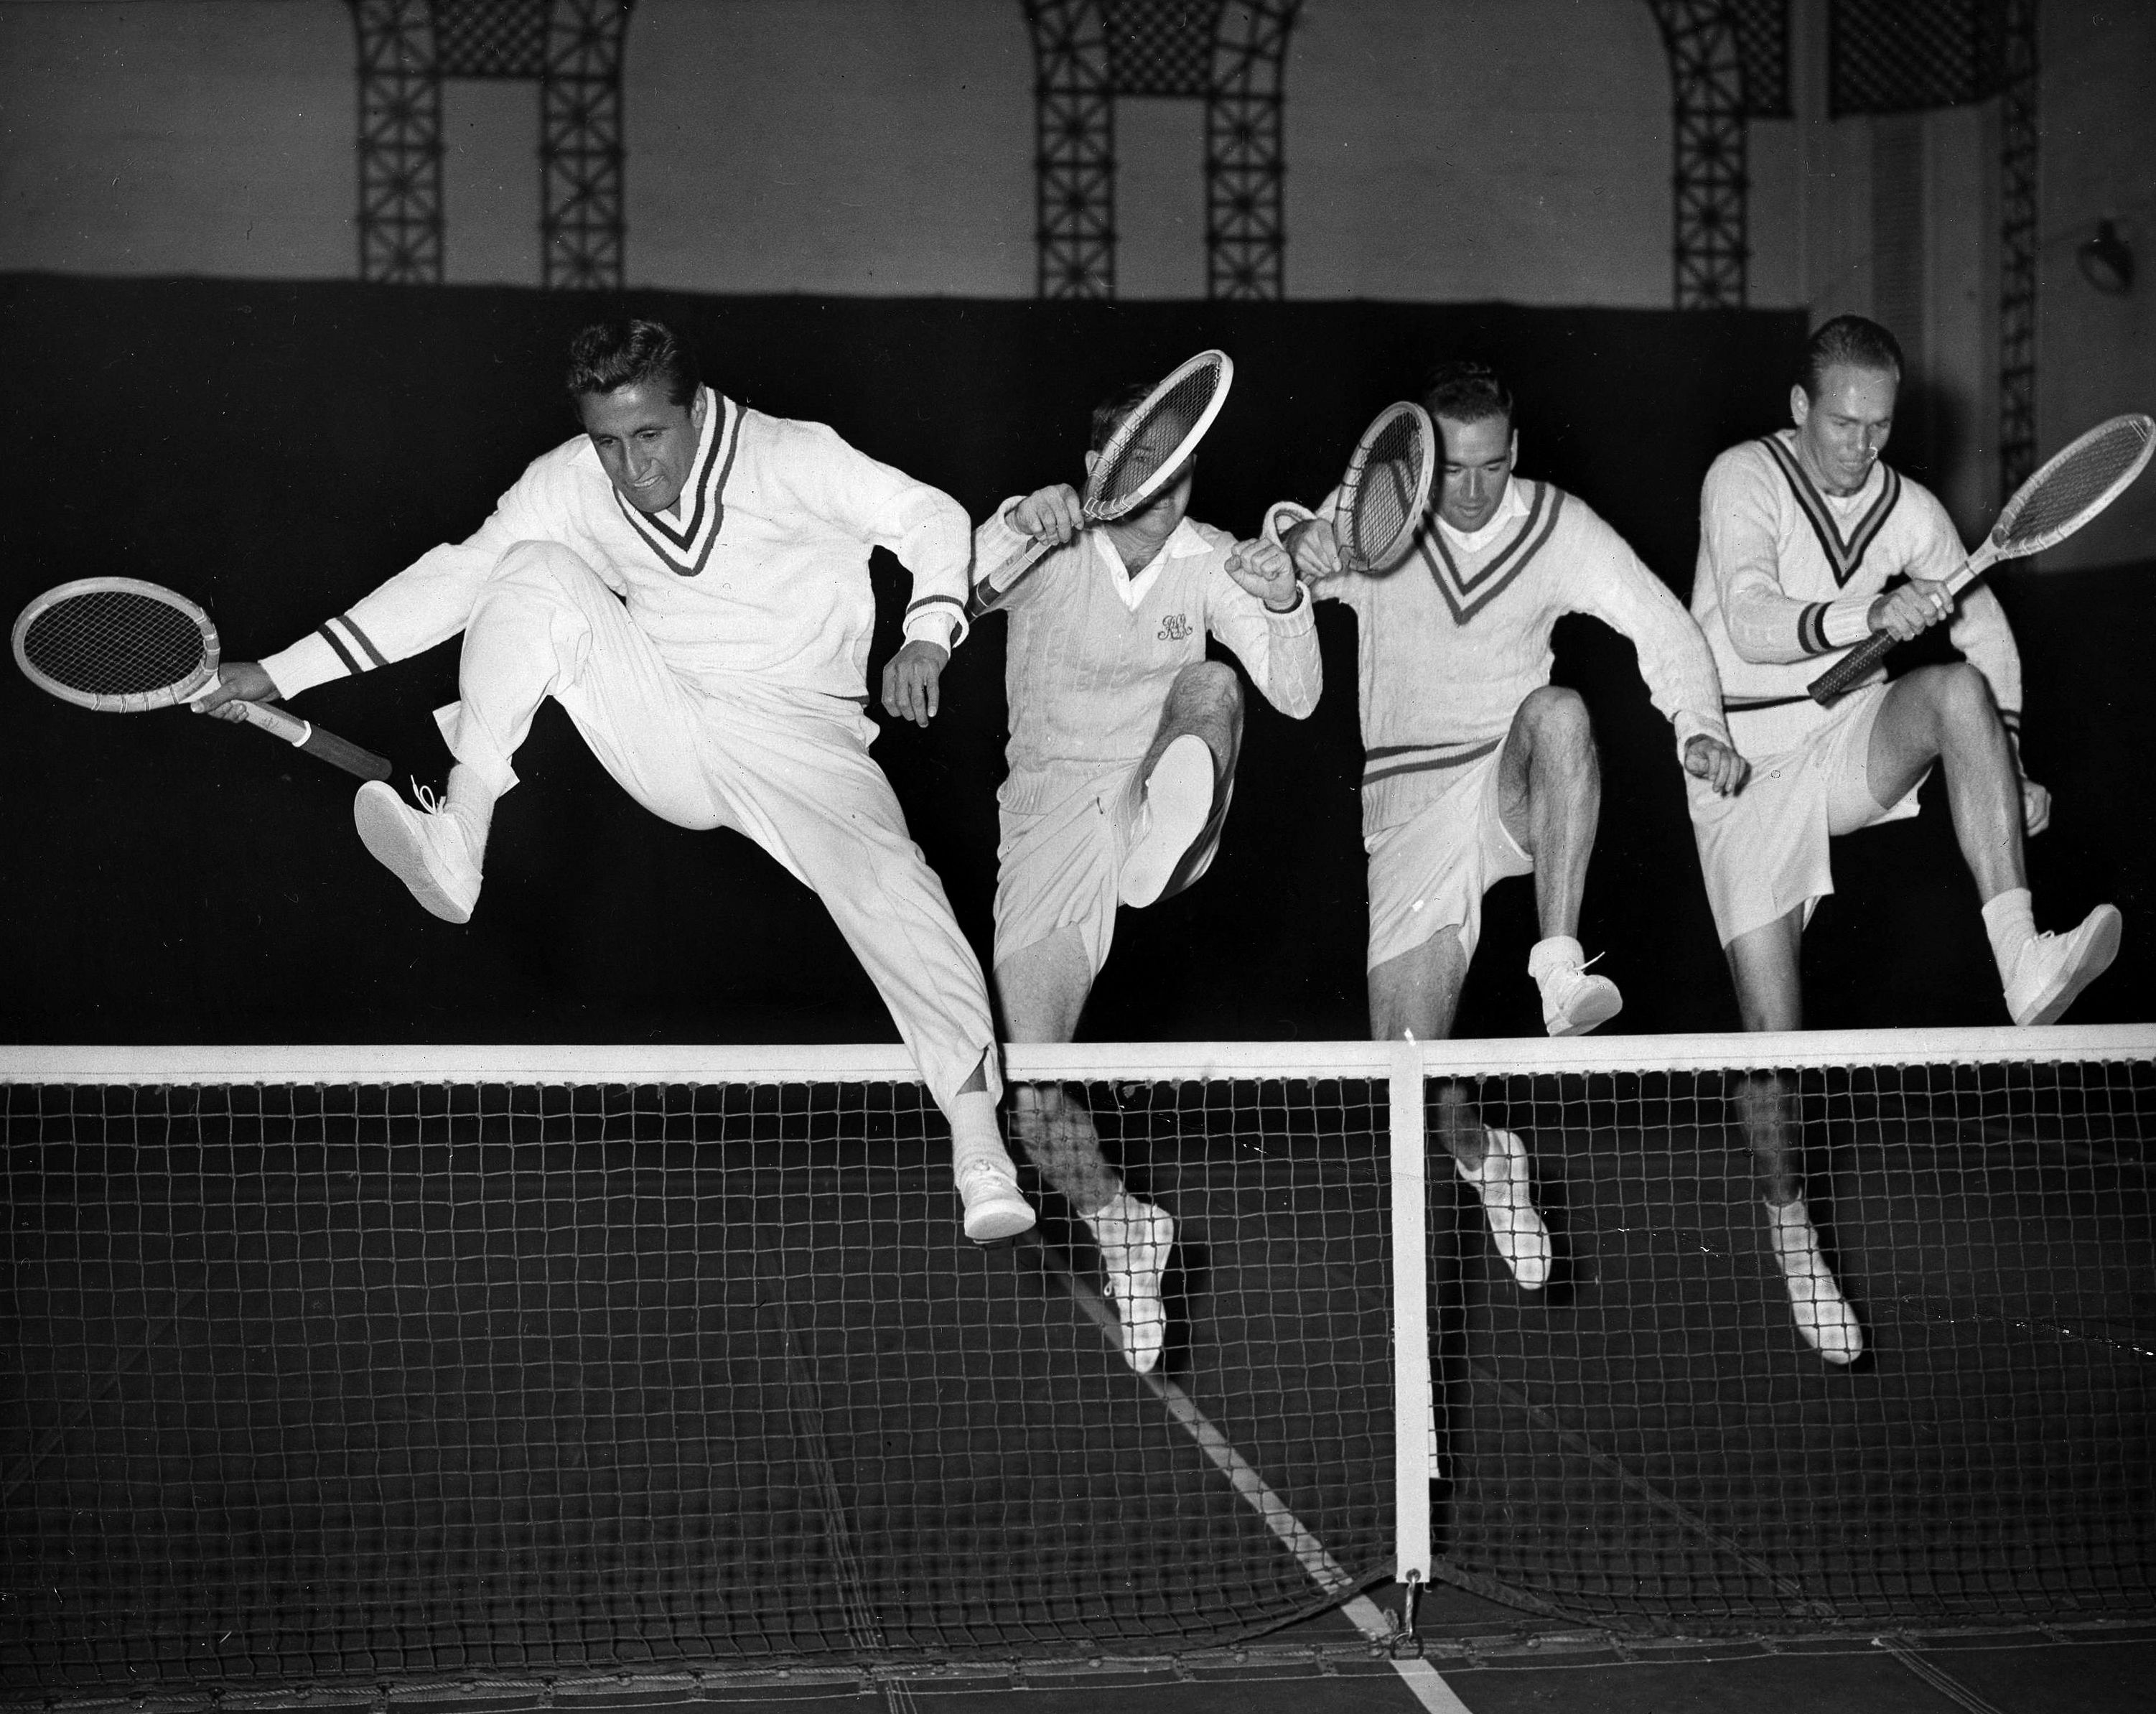 Pancho Segura, 96, tennis great and mentor to Jimmy Connors - The